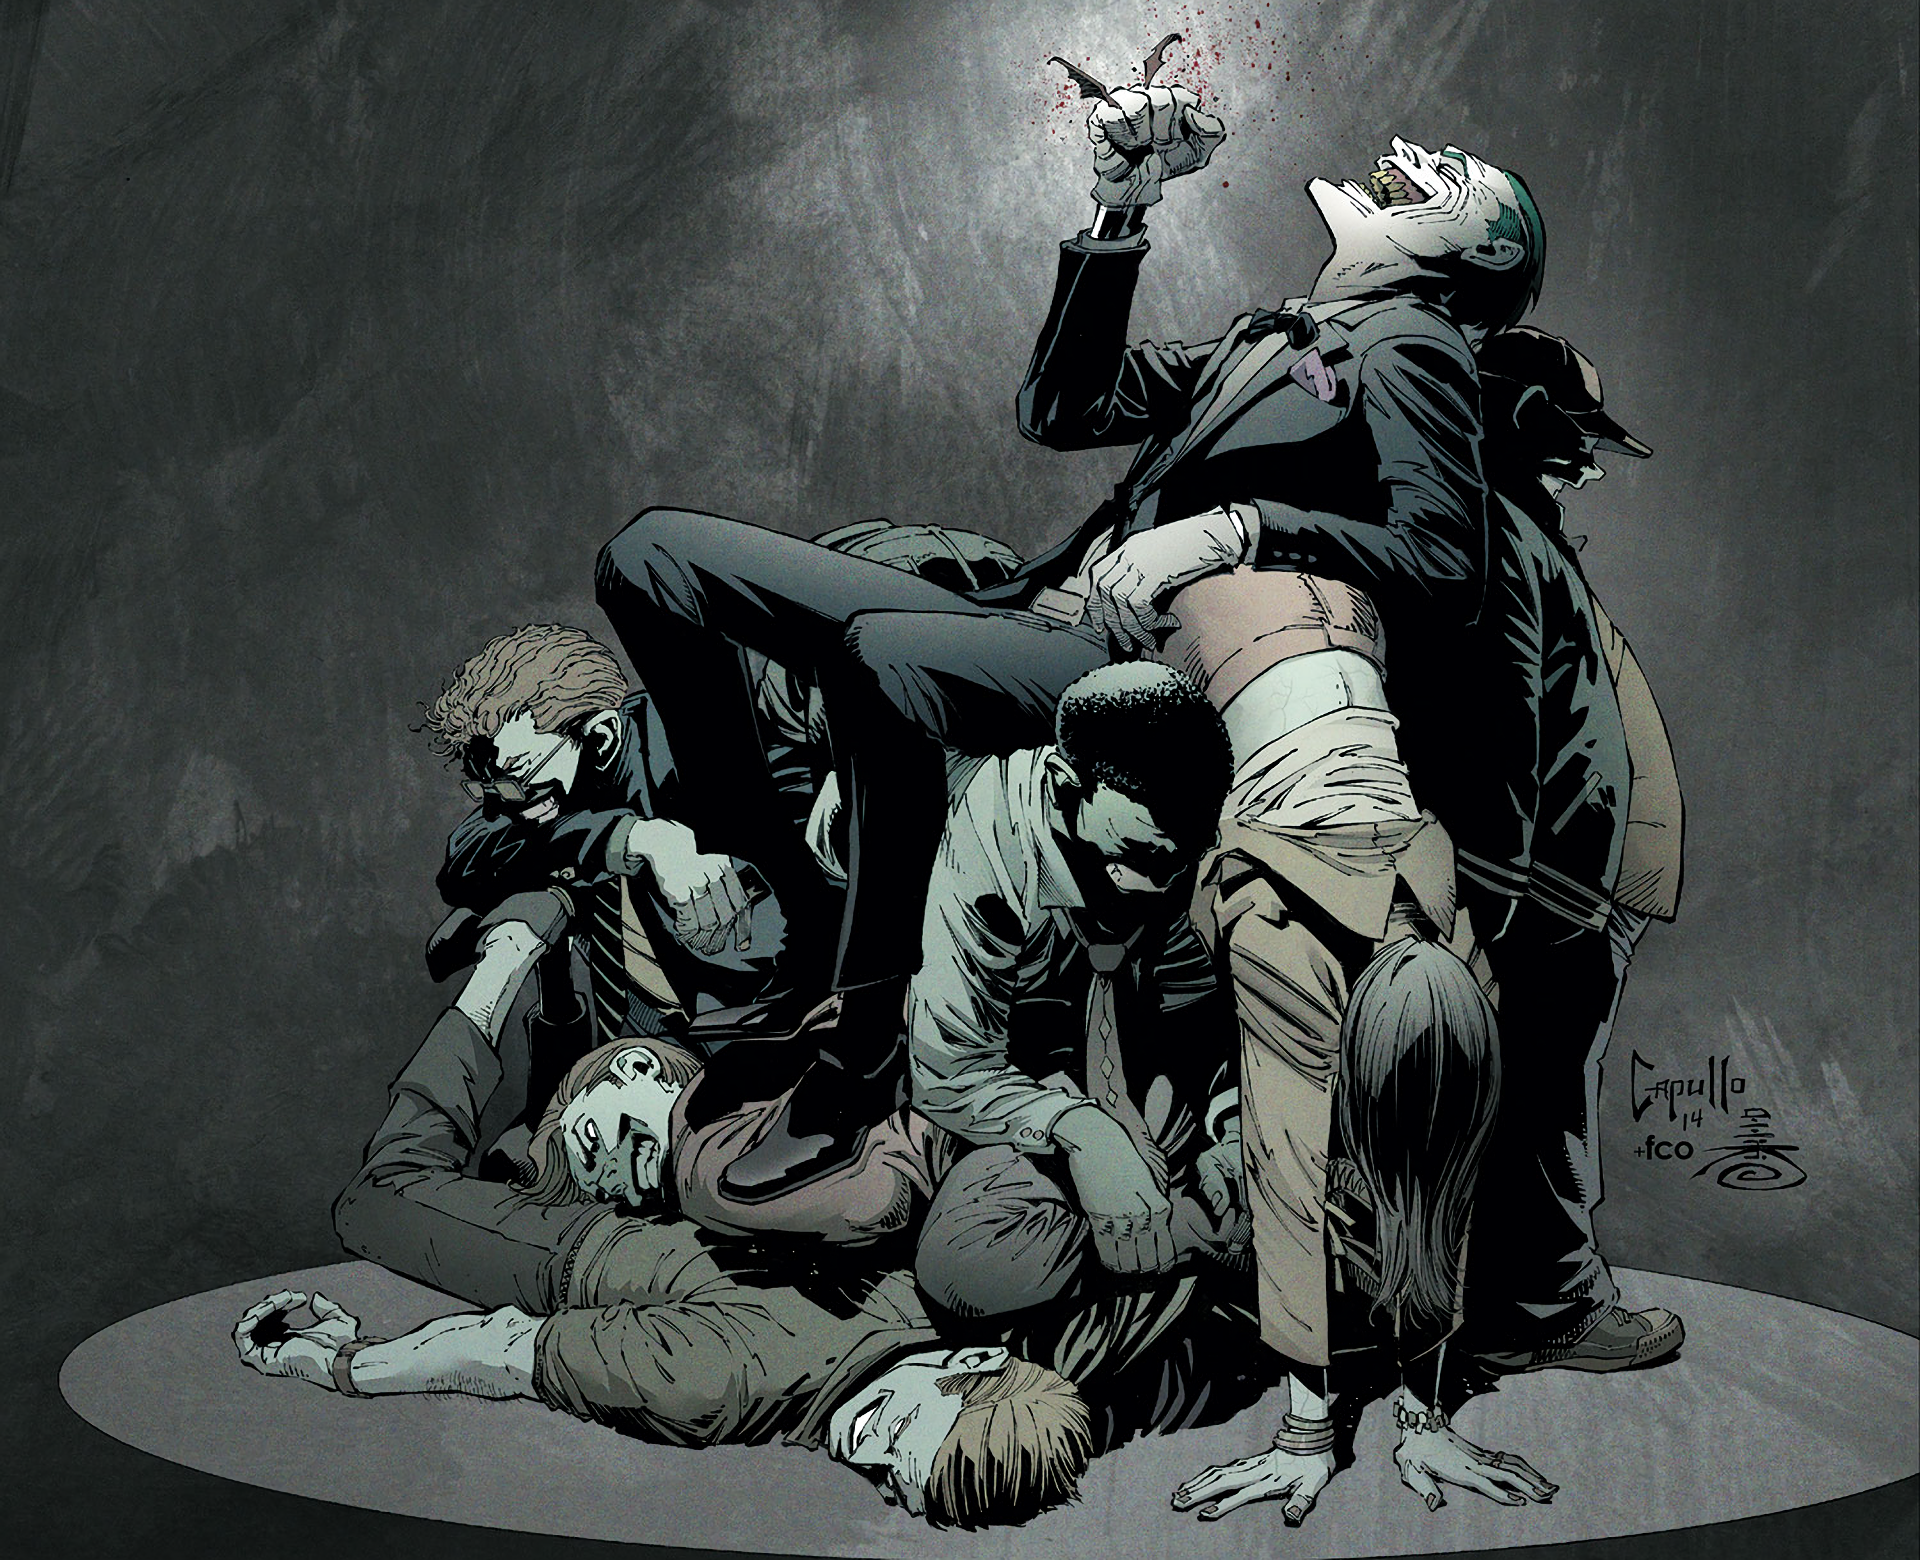 The Joker: Endgame (New 52) HD Wallpaper | Background ...New 52 Joker Wallpaper